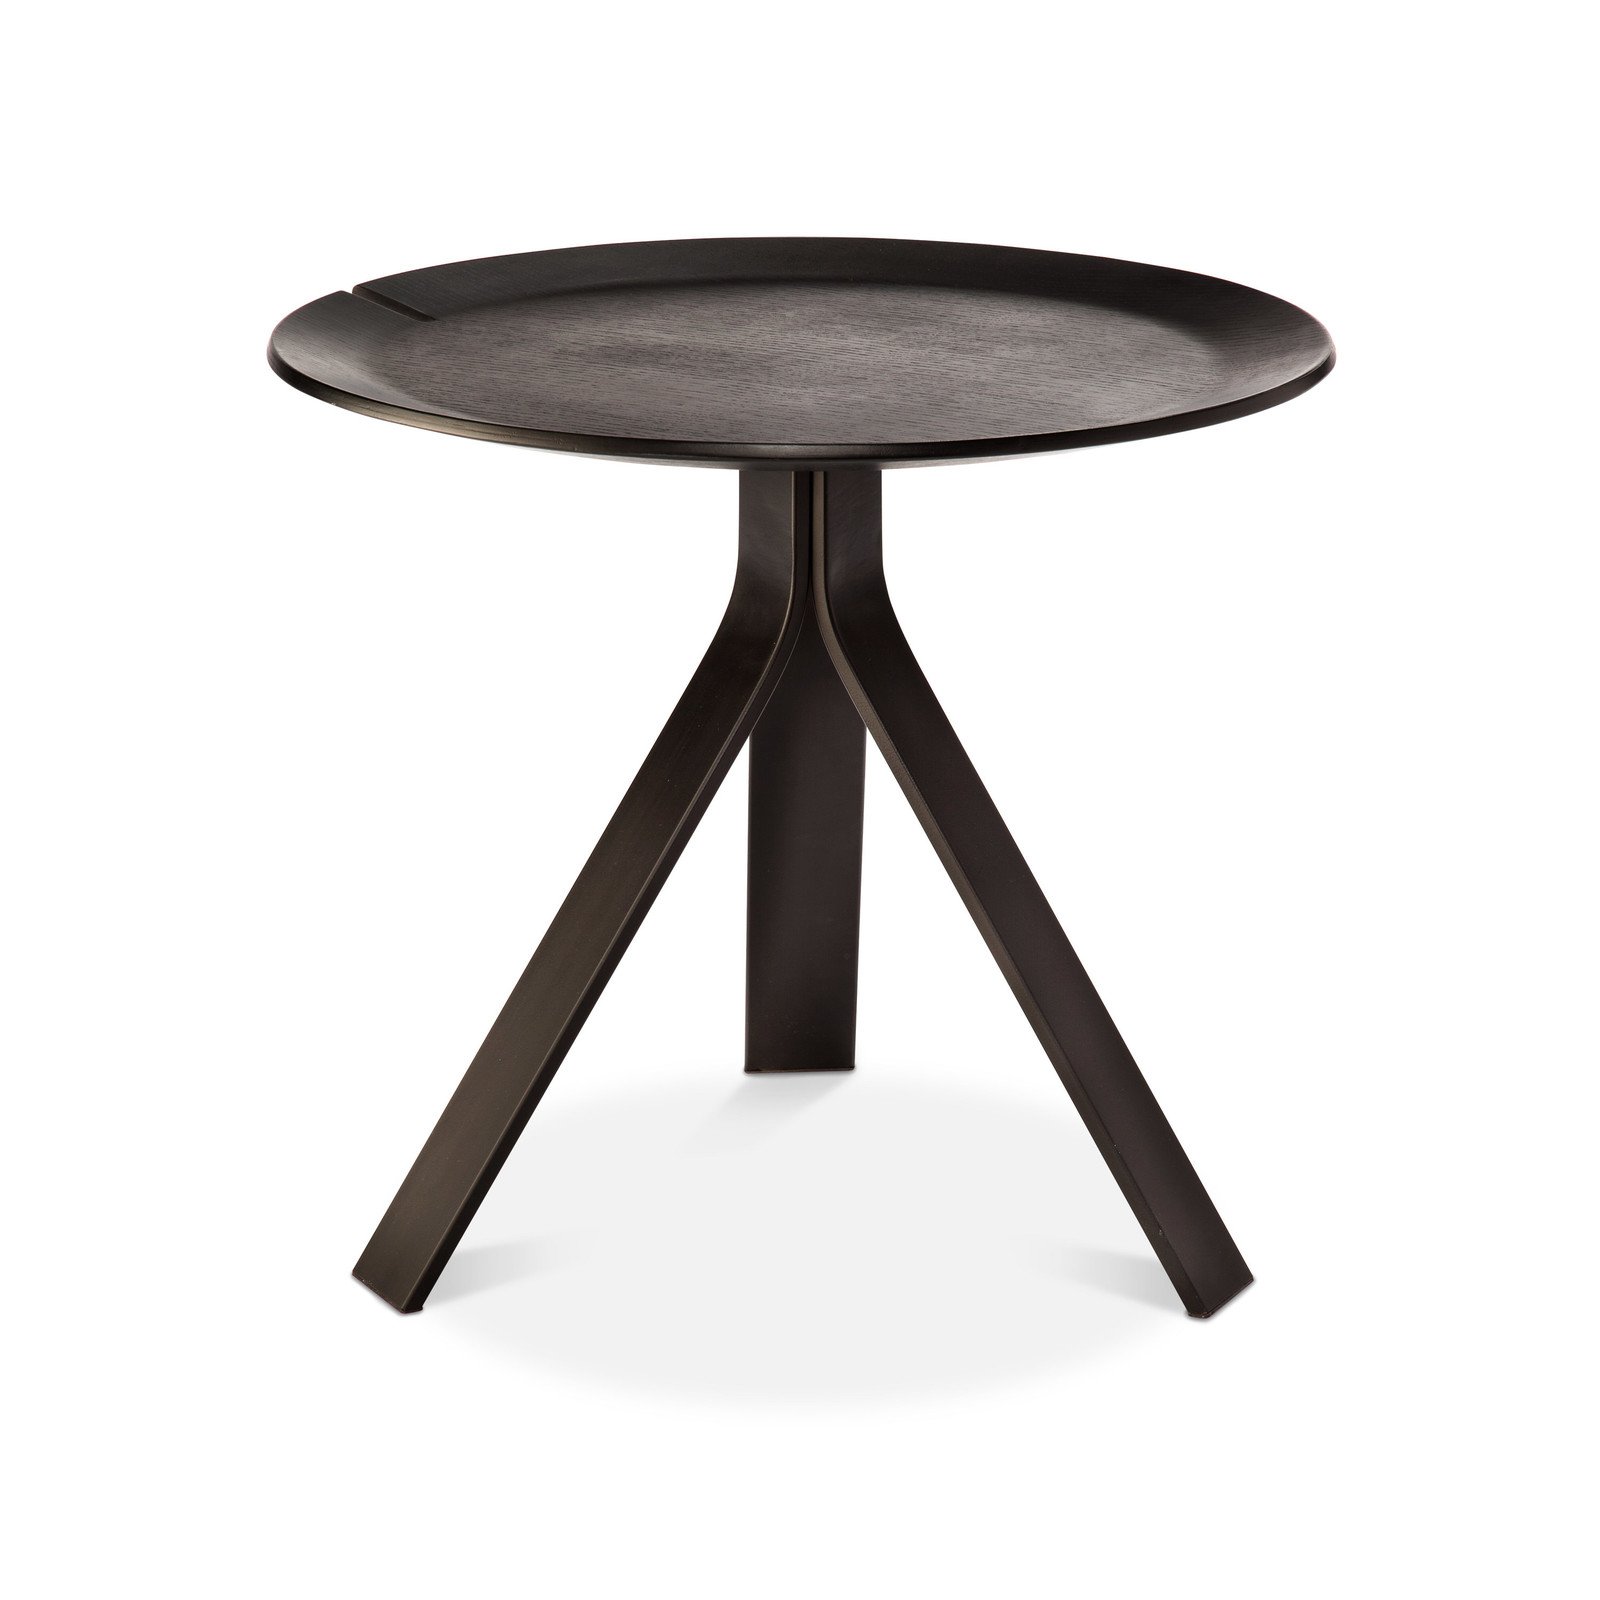 The drinks table you know you need. Note that the tripod legs don't extend past the tabletop diameter — key for small spaces.